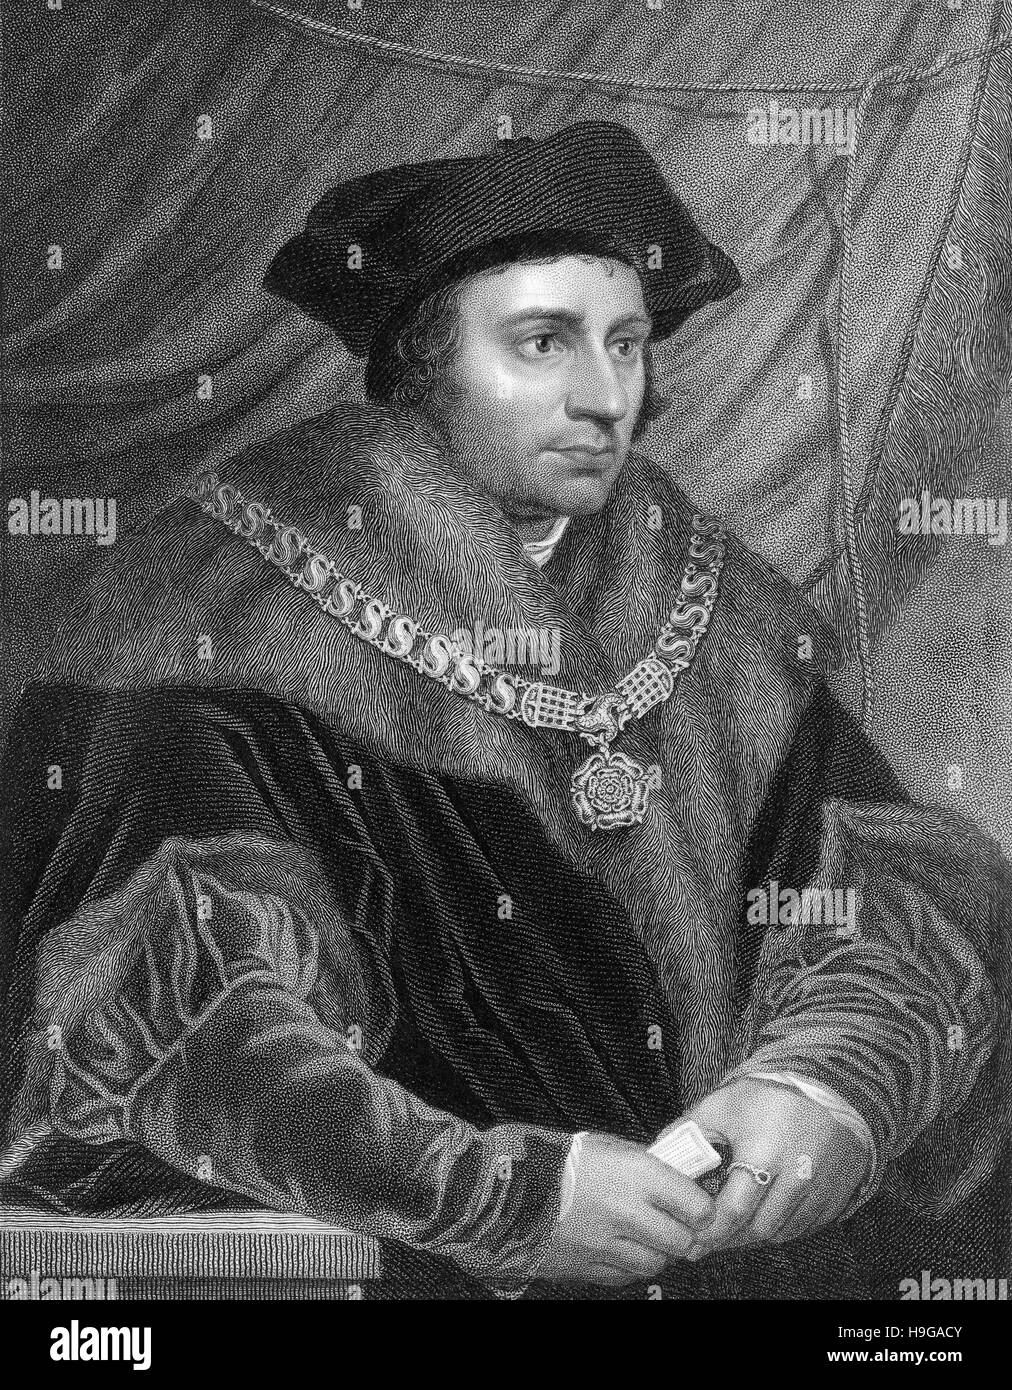 Sir Thomas More, Thomas Morus or More, 1478 - 1535, an English statesman, humanist writer and a saint and martyr - Stock Image